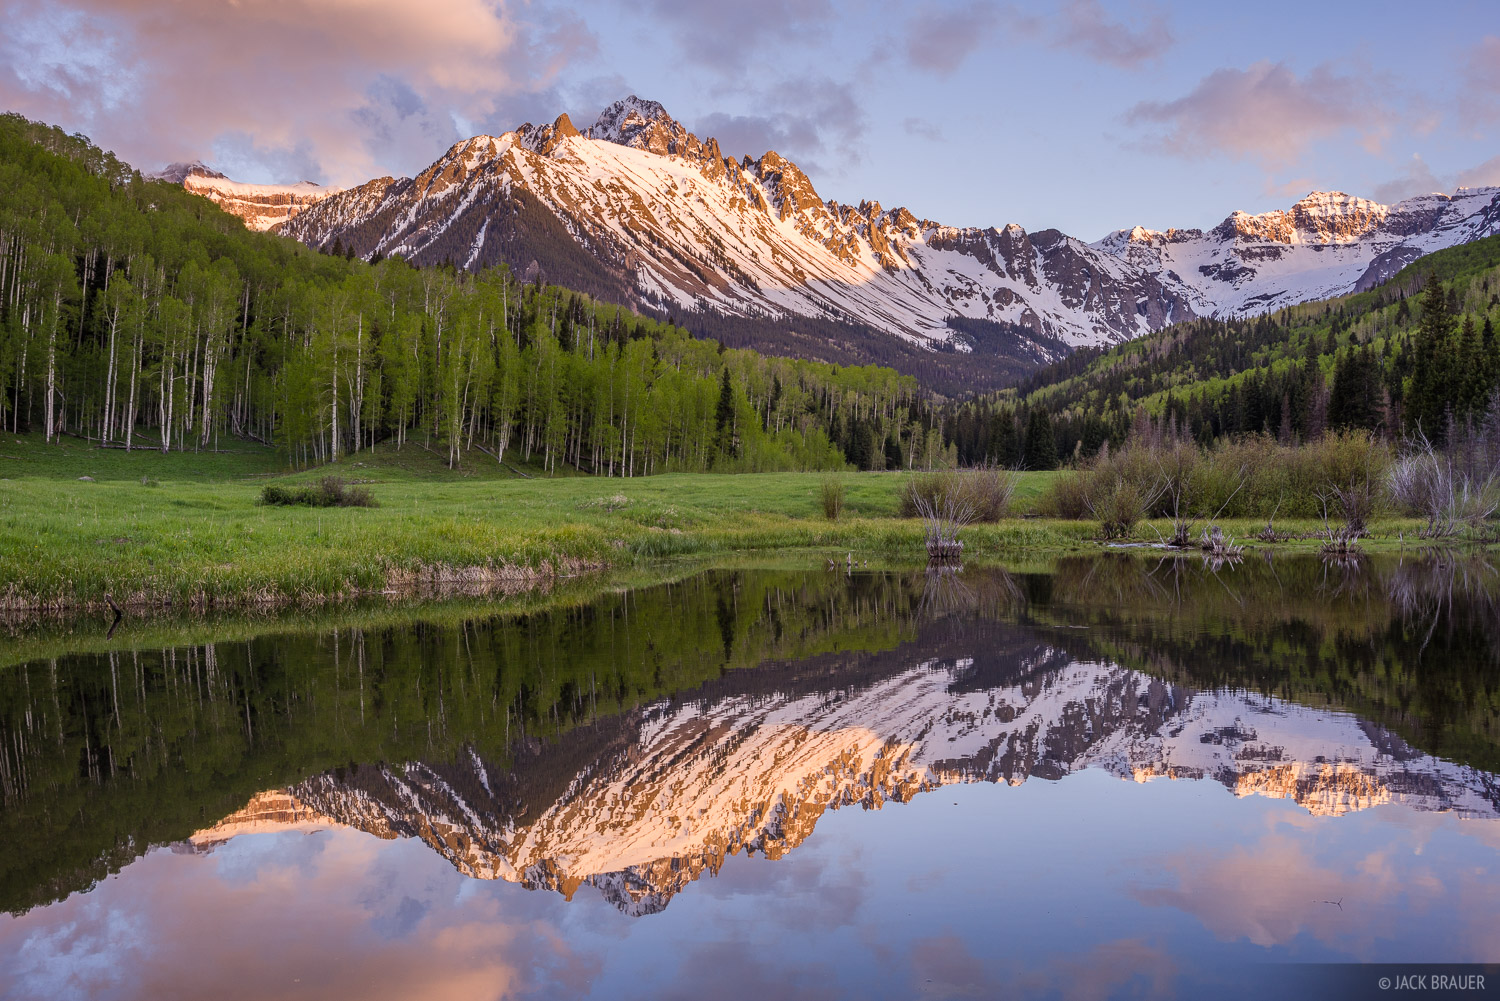 Colorado,Mt. Sneffels,San Juan Mountains,Sneffels Range, photo